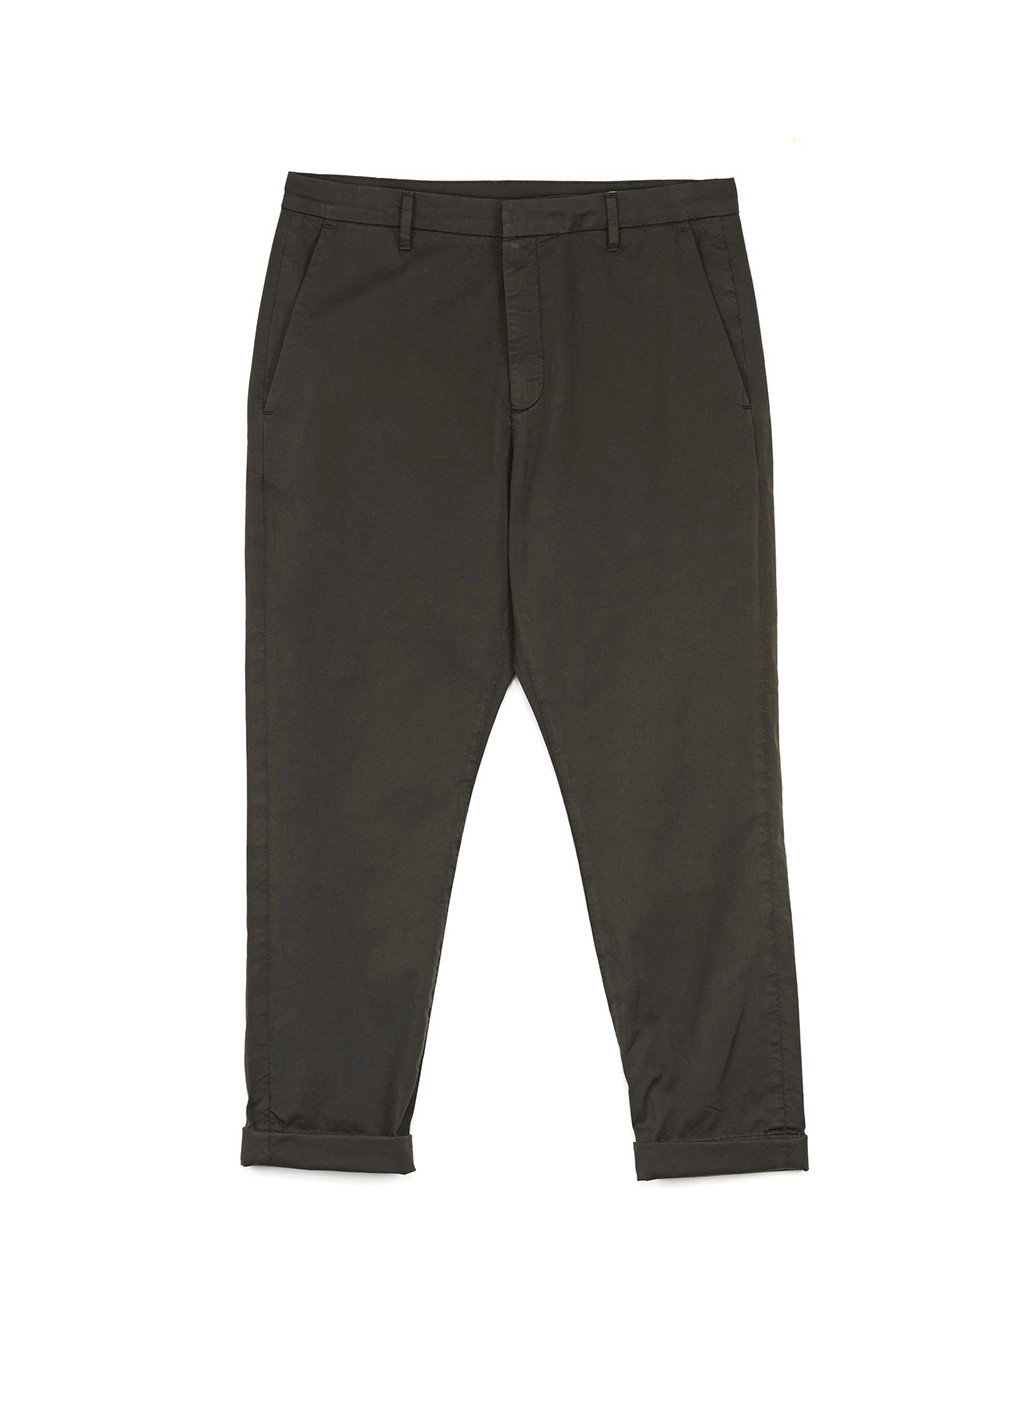 hope-news-trouser-khaki-green-front